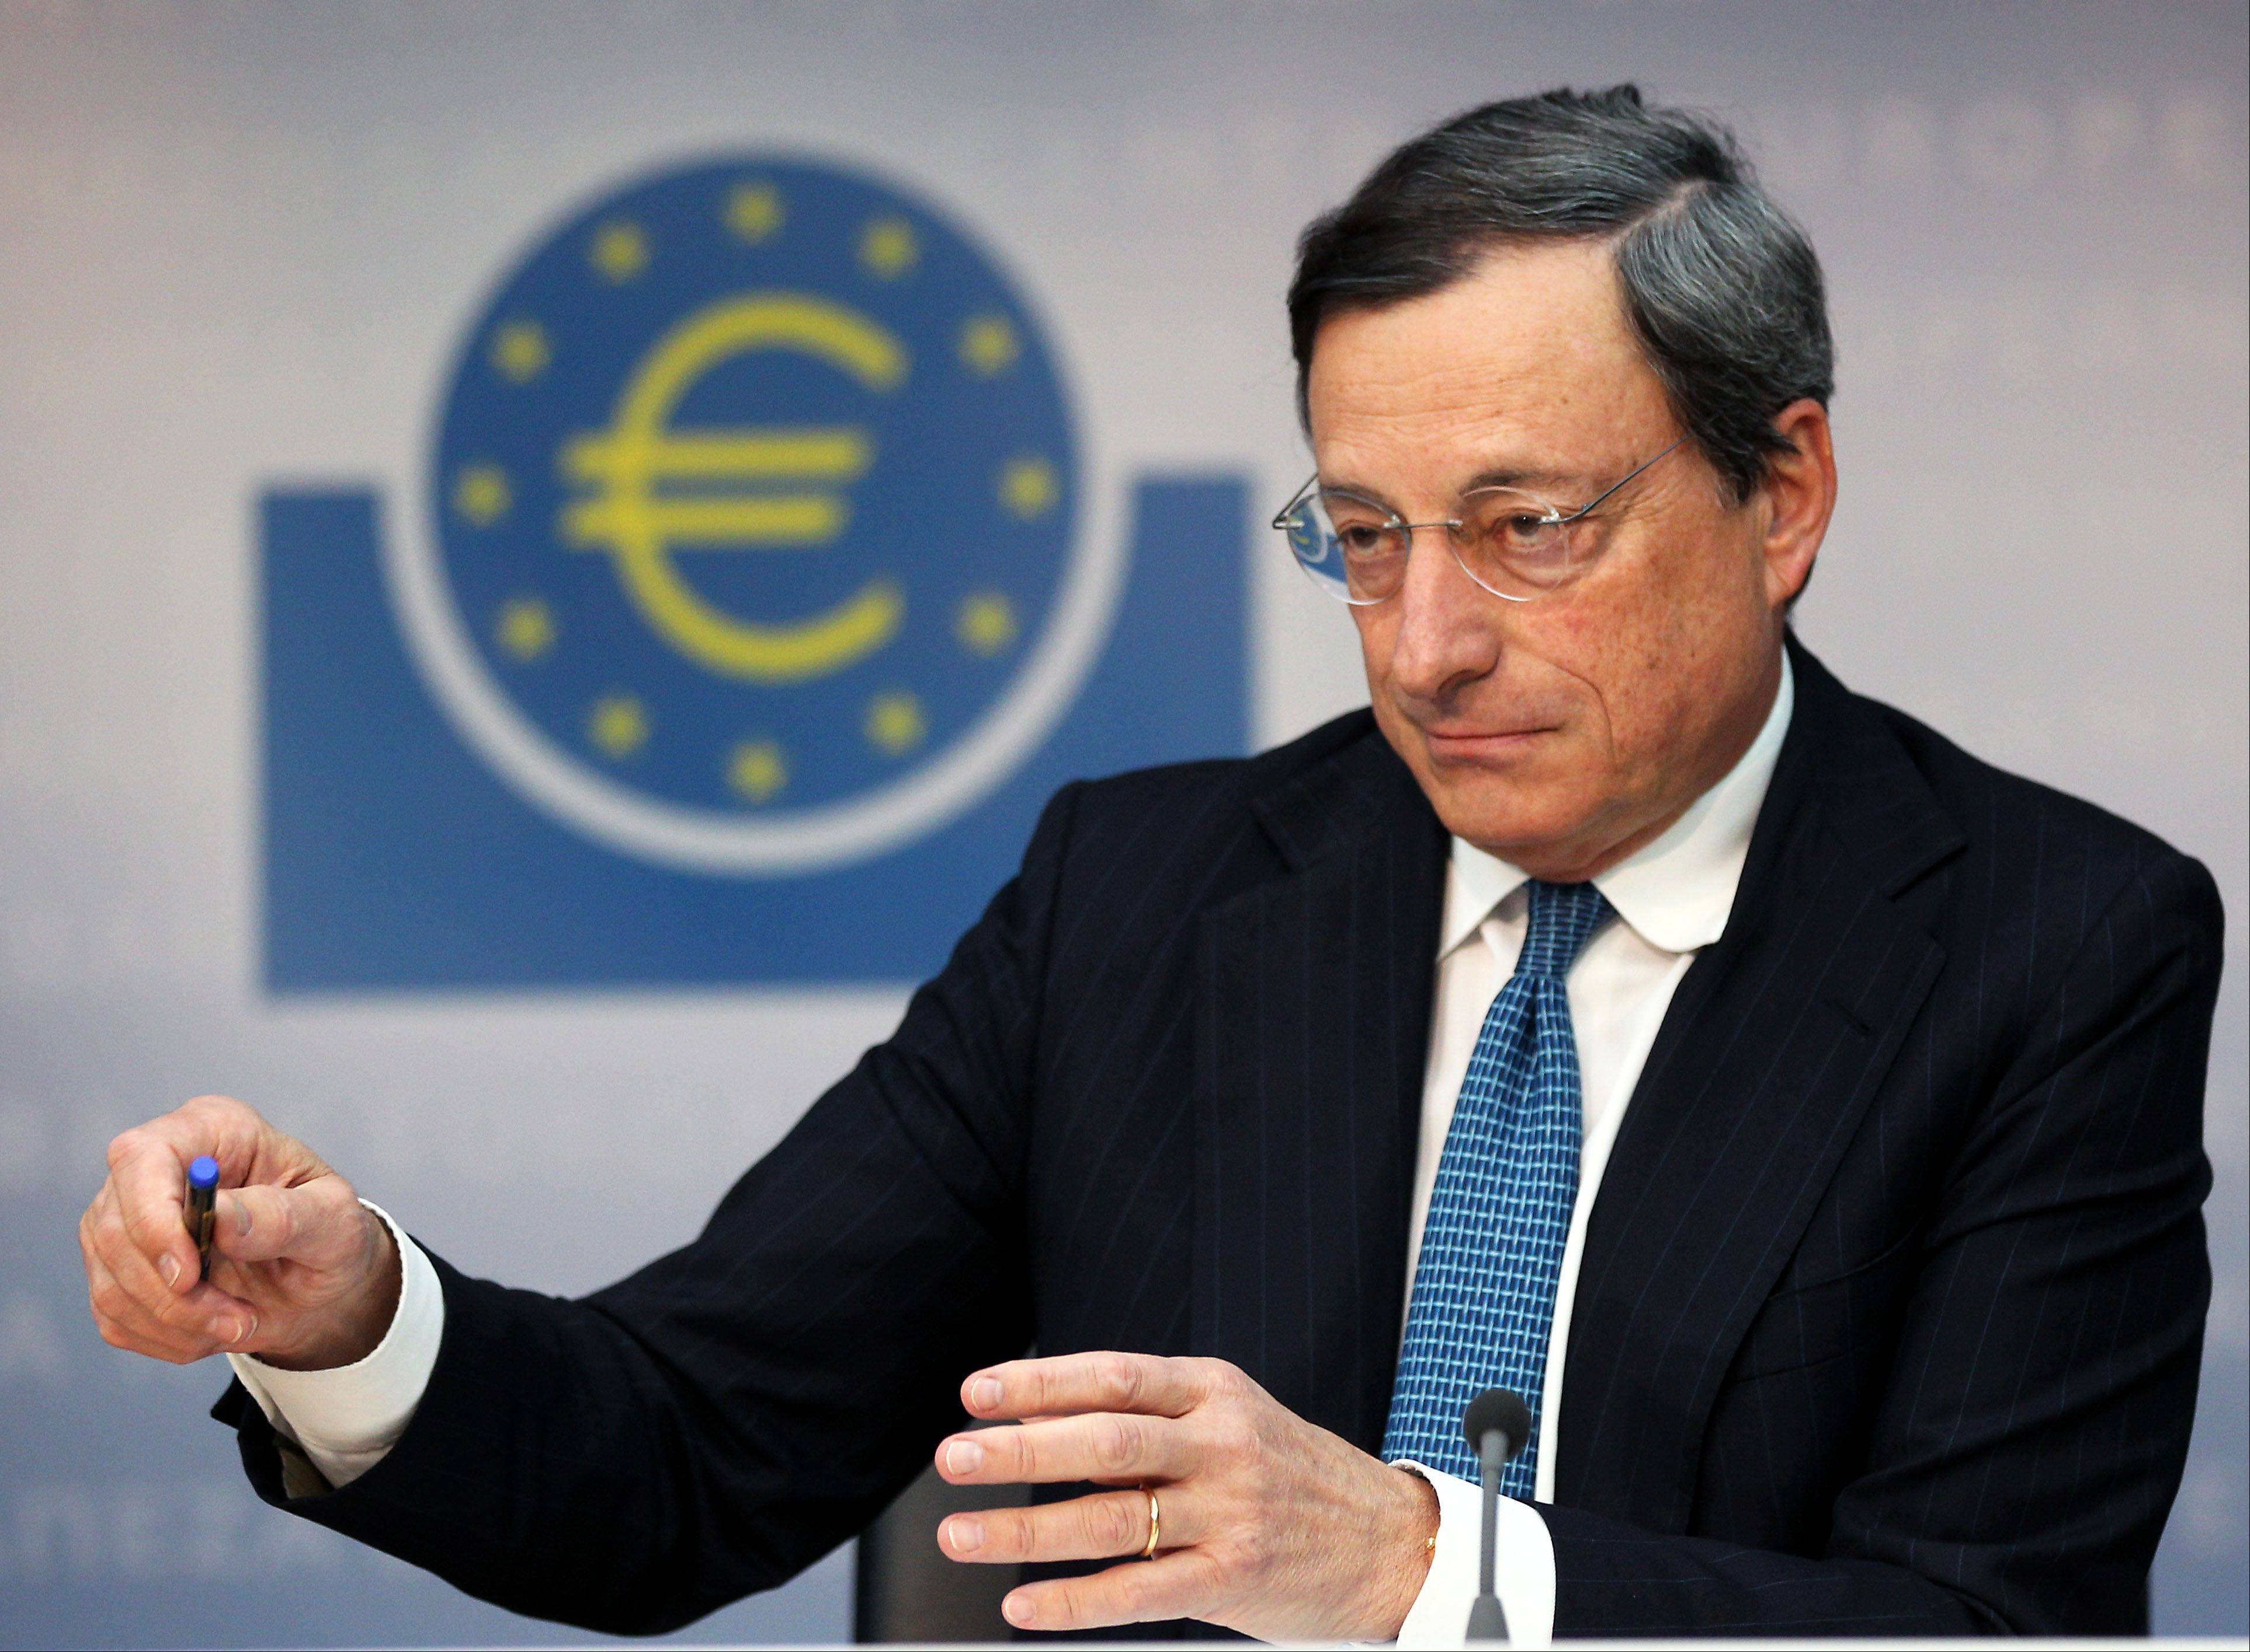 ASSOCIATED PRESSPresident of European Central Bank Mario Draghi addresses the media during a news conference in Frankfurt, Germany, Thursday, following a meeting of the ECB governing council concerning the further strategies in the European financial crisis.